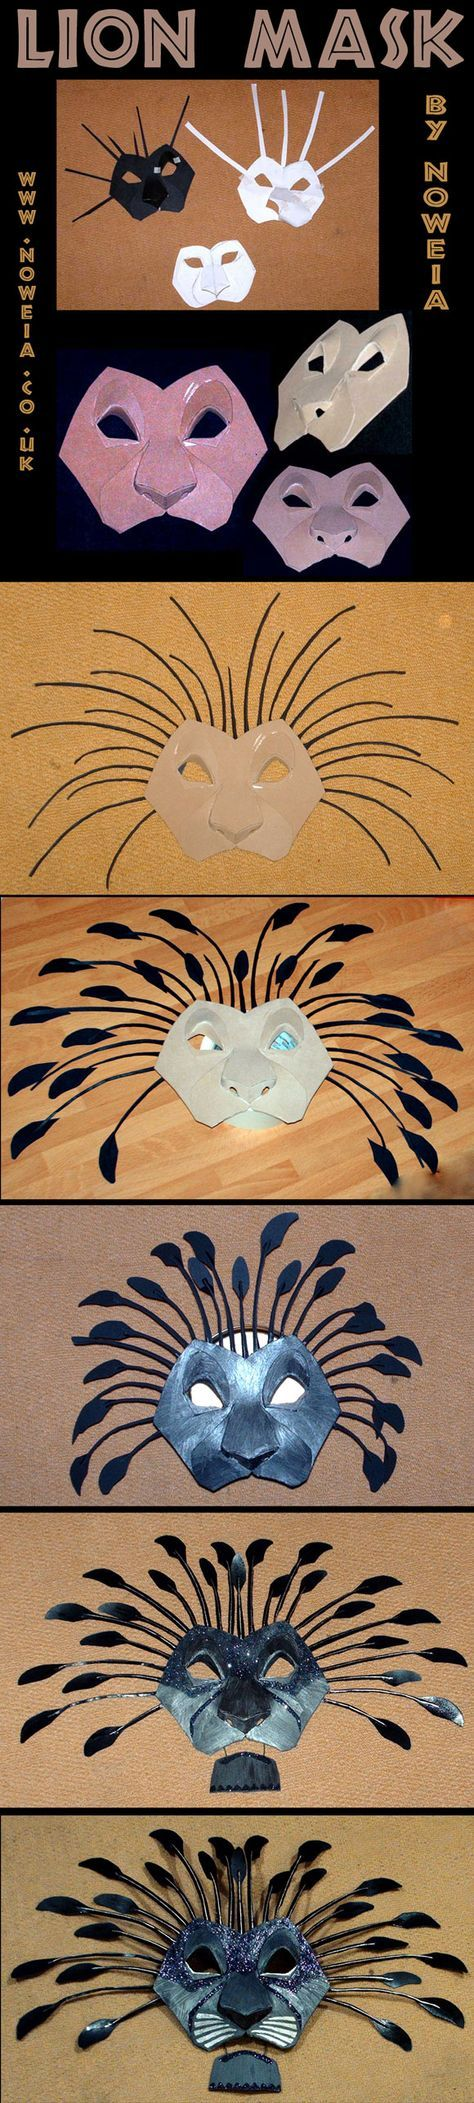 50 besten lion king make up bilder auf pinterest k nig. Black Bedroom Furniture Sets. Home Design Ideas